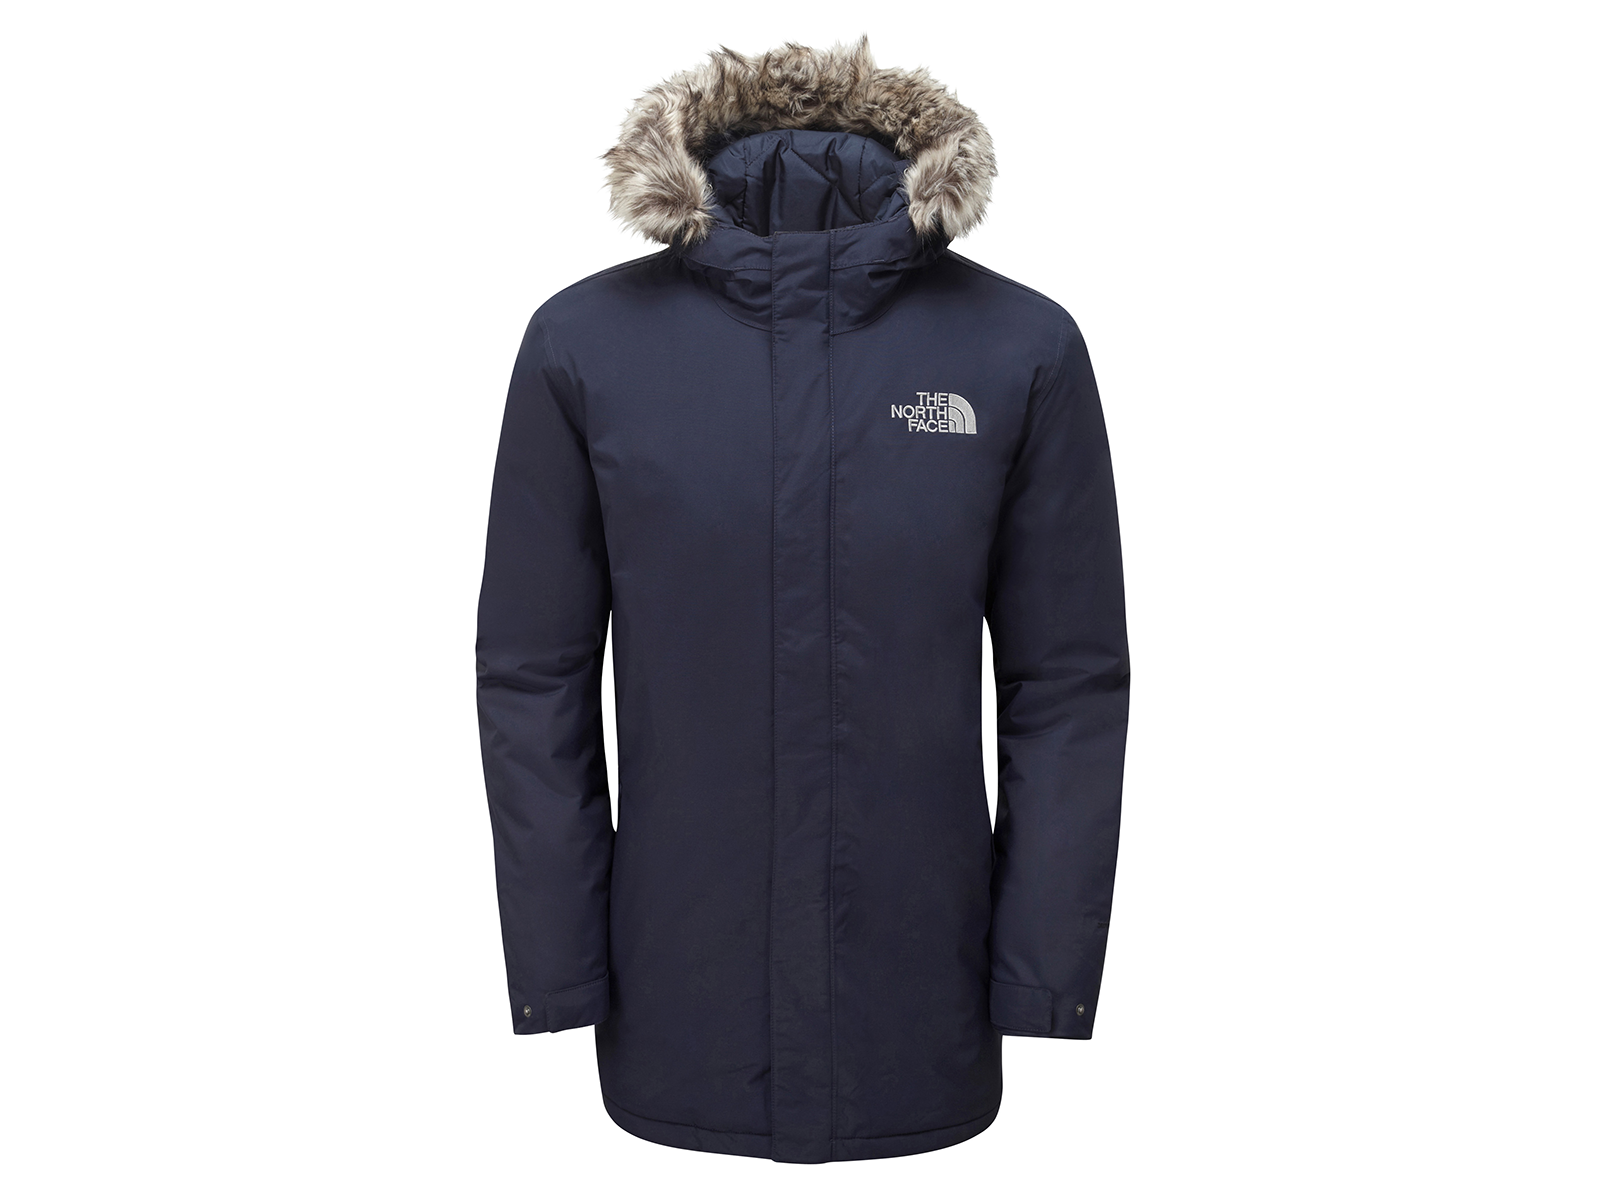 the north face herren m zaneck jacke winterjacke parka kapuzenjacke mantel ebay. Black Bedroom Furniture Sets. Home Design Ideas